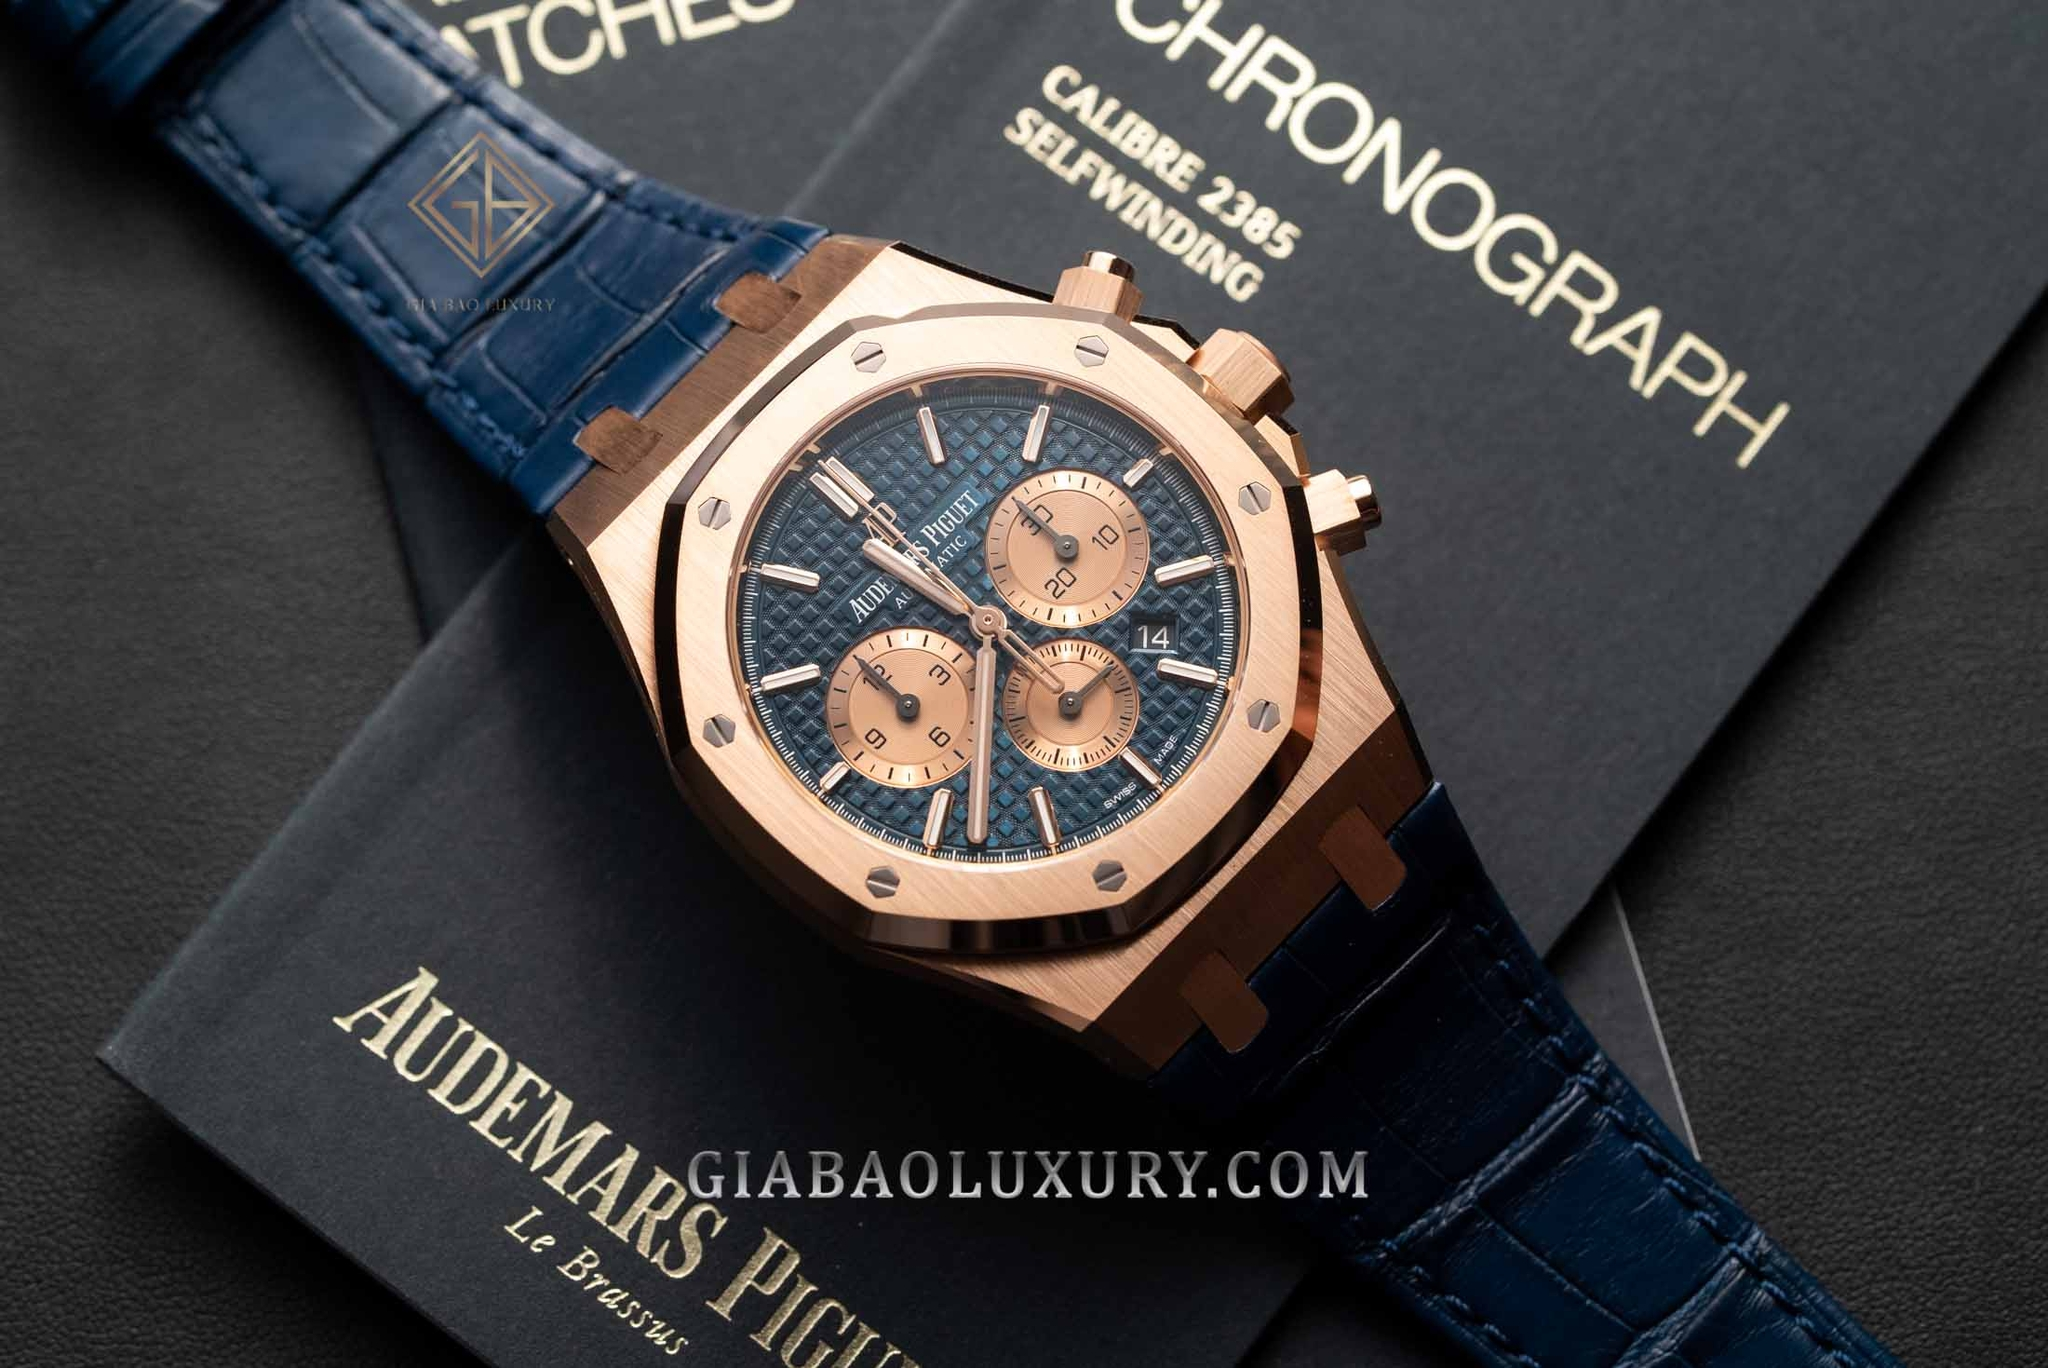 Audemars Piguet Royal Oak Chronograph 41mm 26331OR.OO.D315CR.01 Dây Da Cá Sấu